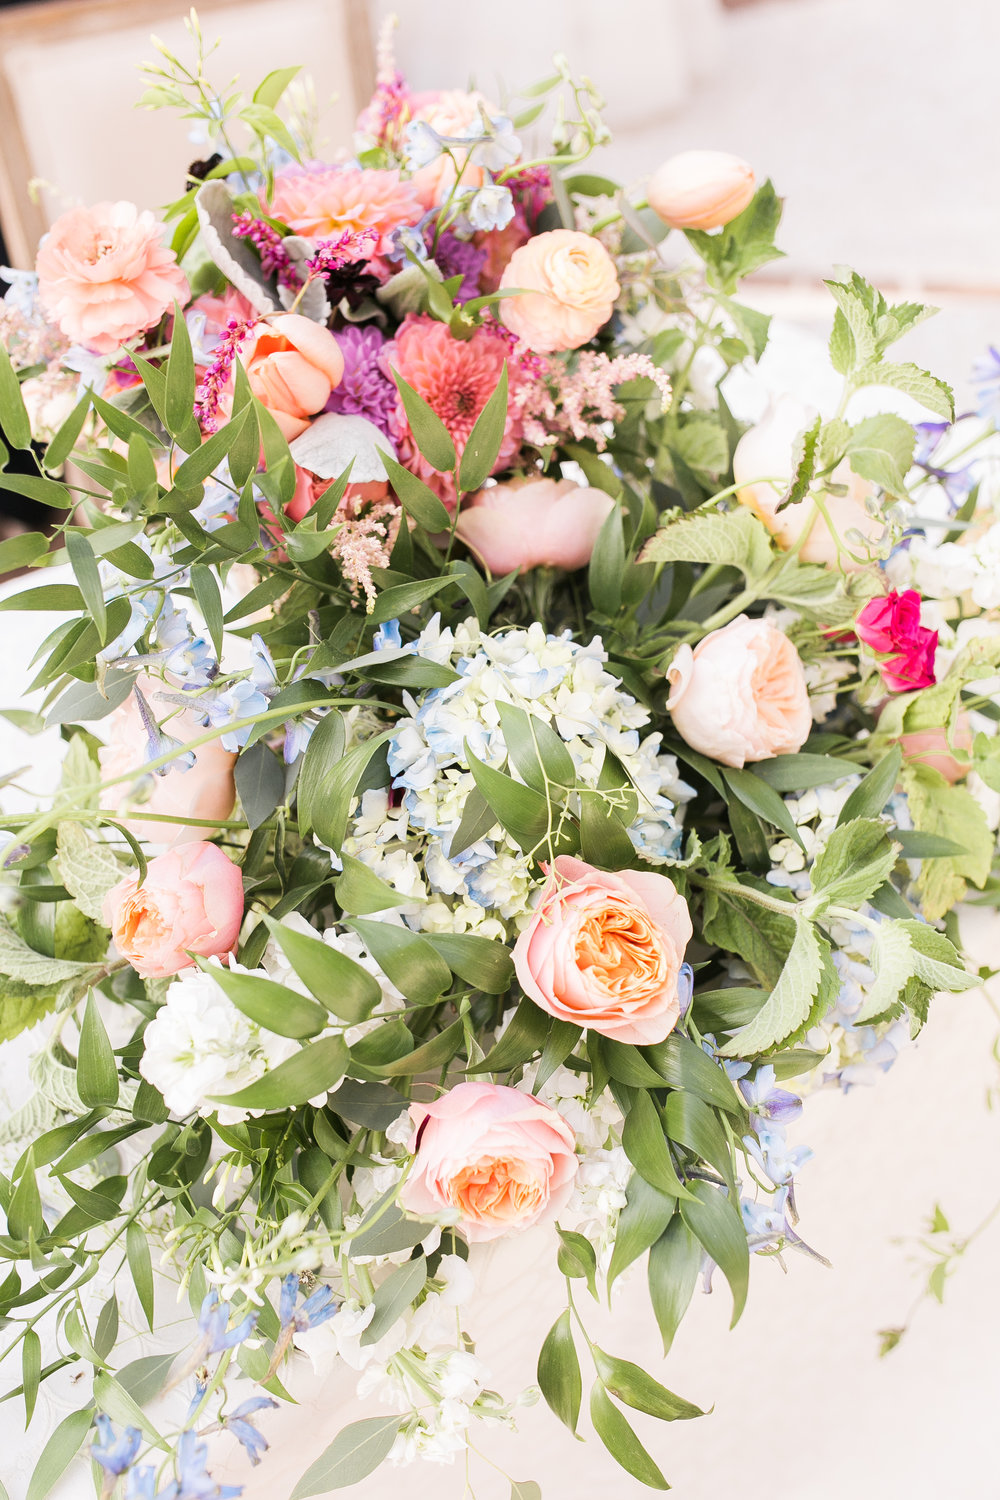 Colorful florals by Branch Design Studio  Colorful outdoor reception at The Thomas Bennett House wedding in Charleston, SC  //  photographed by Jenna Weddings  Traditional wedding ceremony at Cathedral of St. John the Baptist in Charleston, SC  //  A Lowcountry Wedding Magazine & Blog